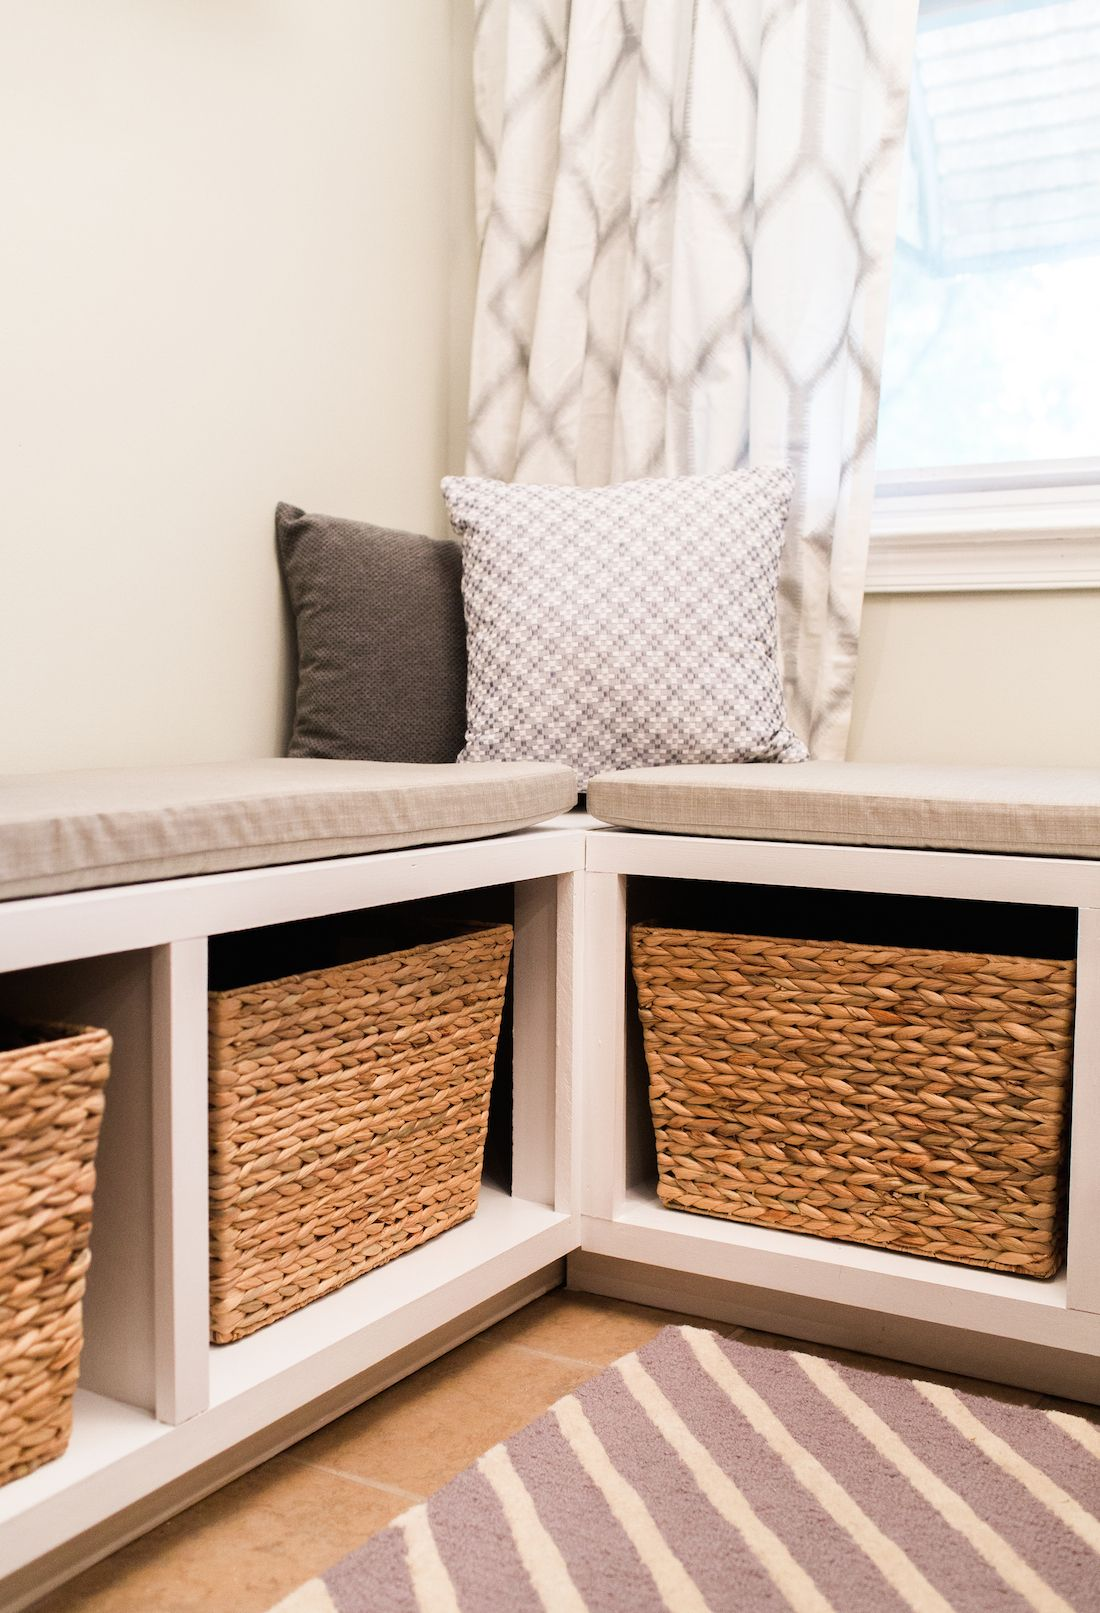 Build An L Shaped Bench To Maximize Seating And Storage In